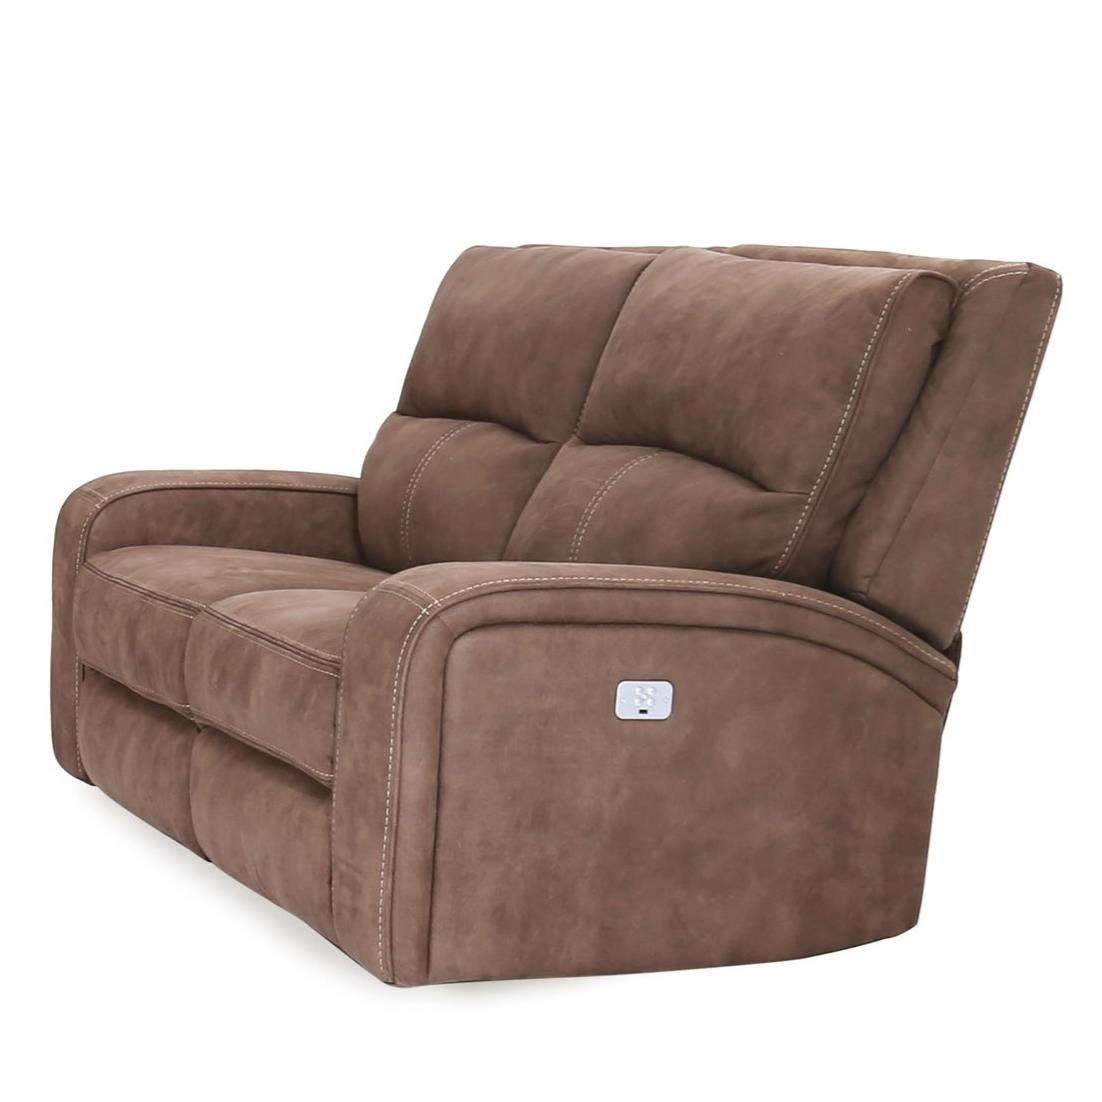 5168HM Power Reclining Loveseat by Cheers at Beck's Furniture